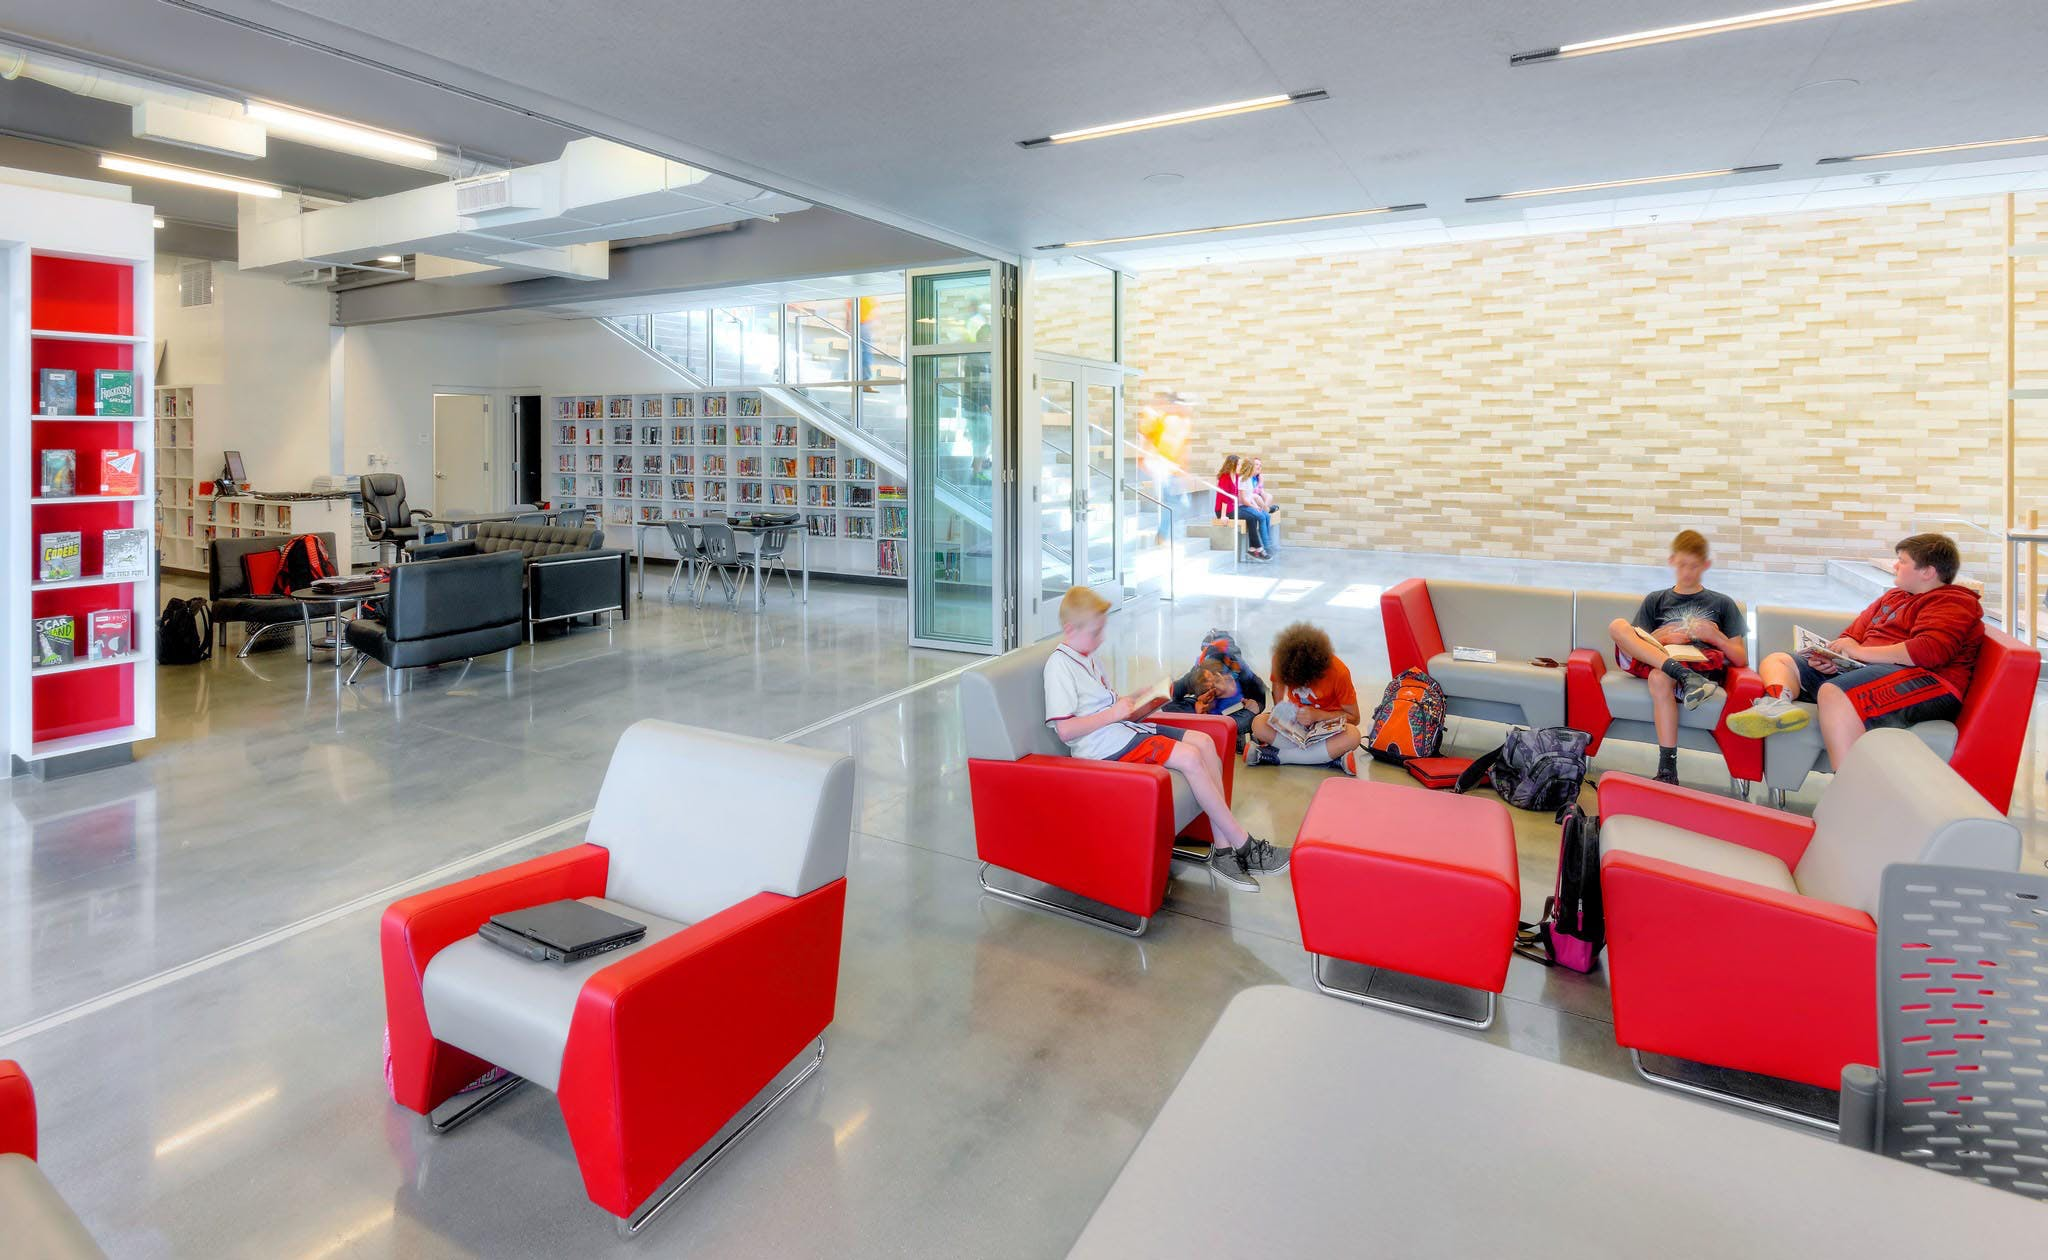 interior glass wall system in school for flexible space and collaboration